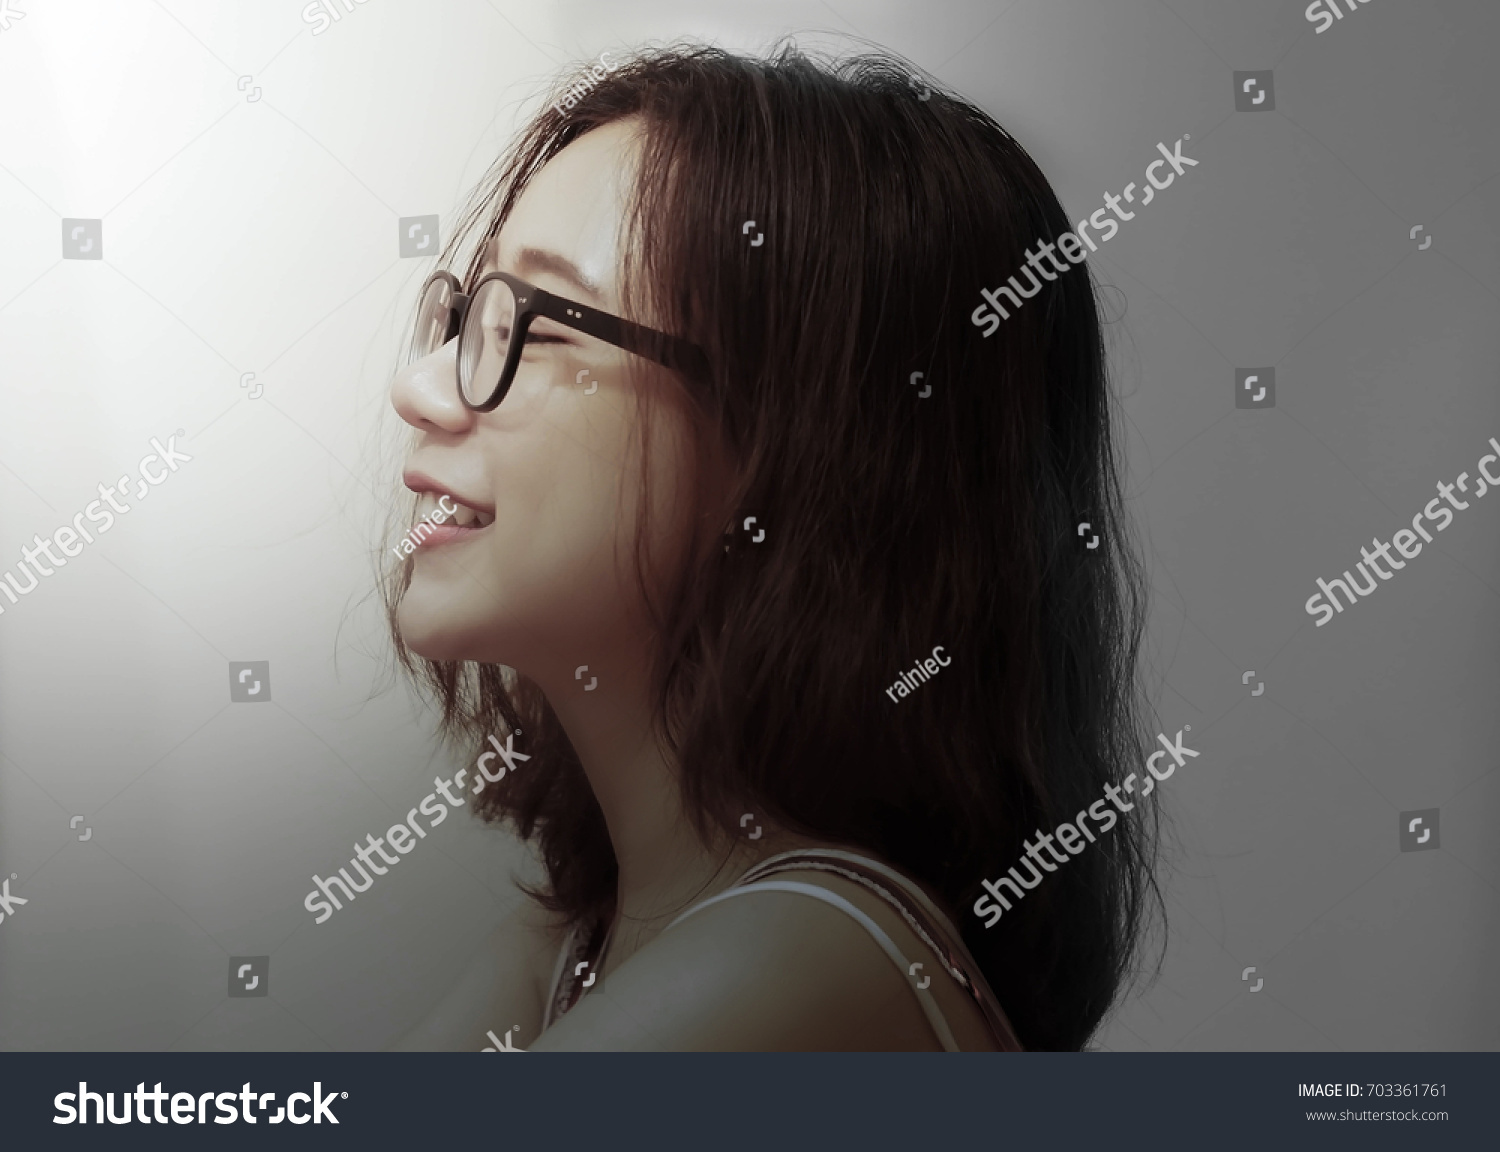 ffa2a4d4bd29 Beautiful Portrait of Asian Woman s face with glasses in side view with  emotions of happy